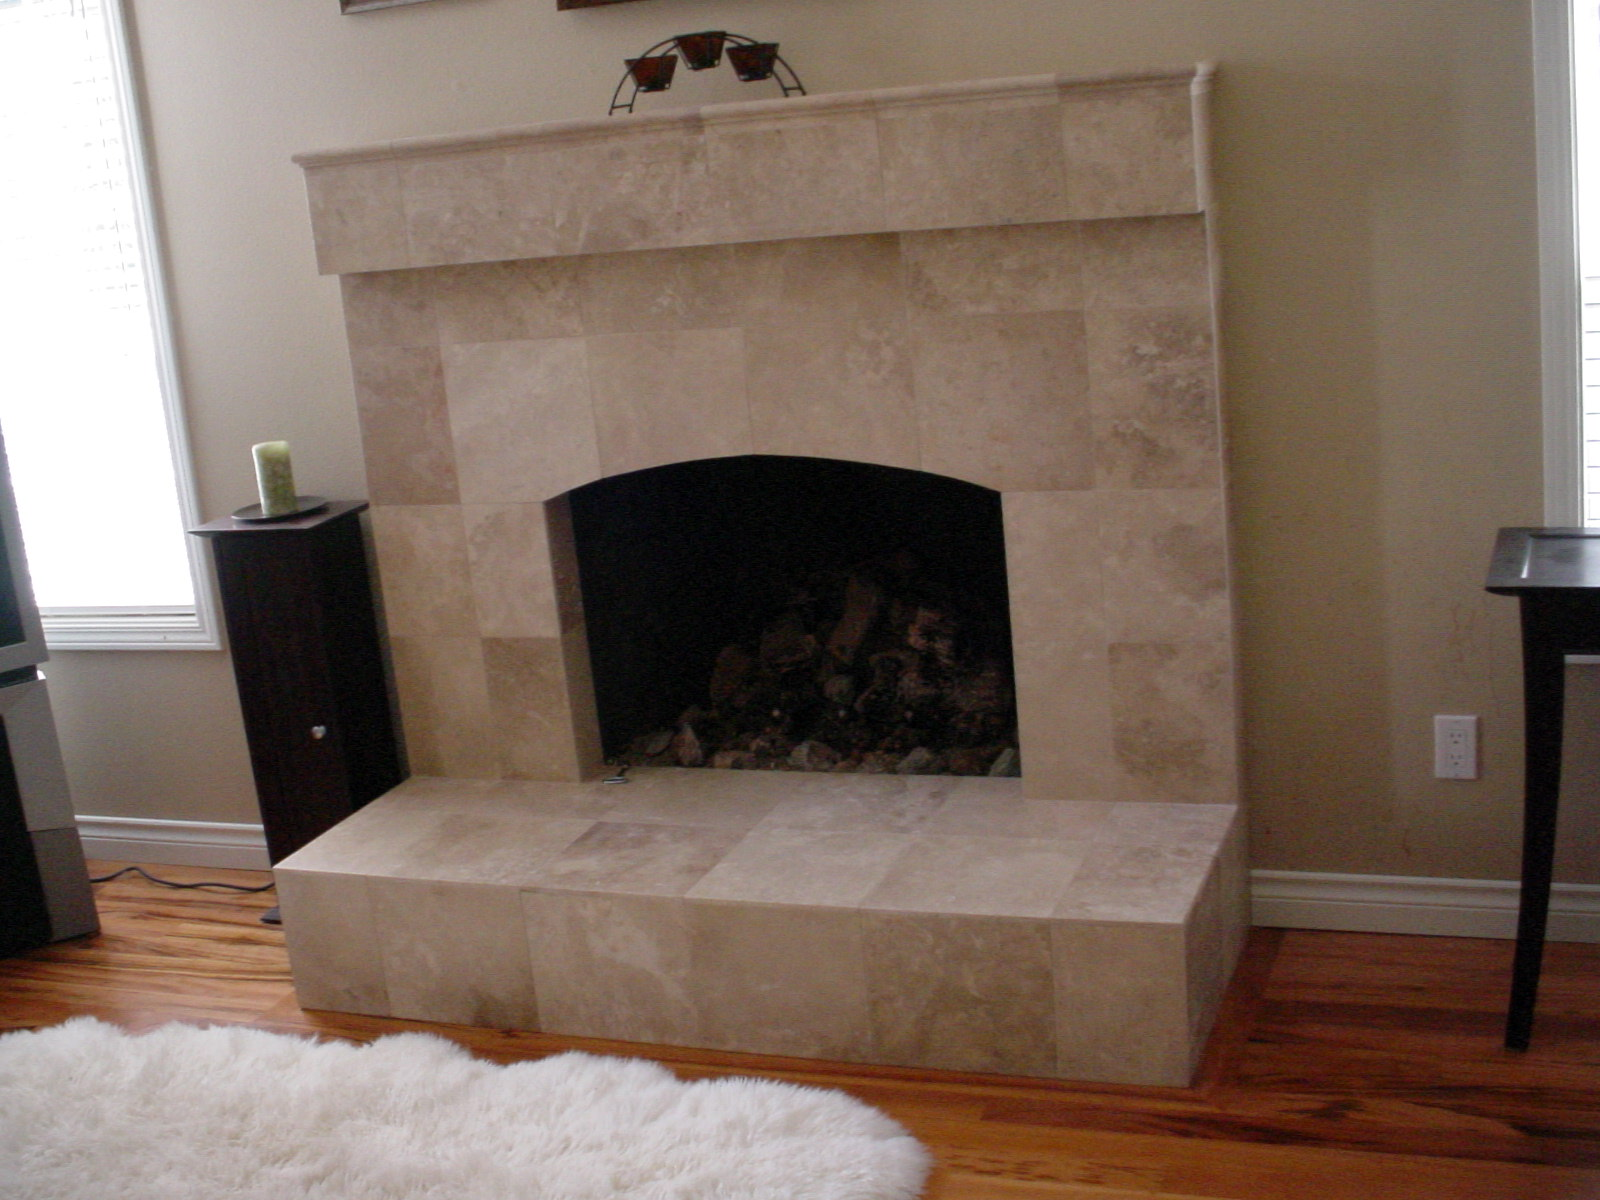 If you need fireplace remodel or fireplace design